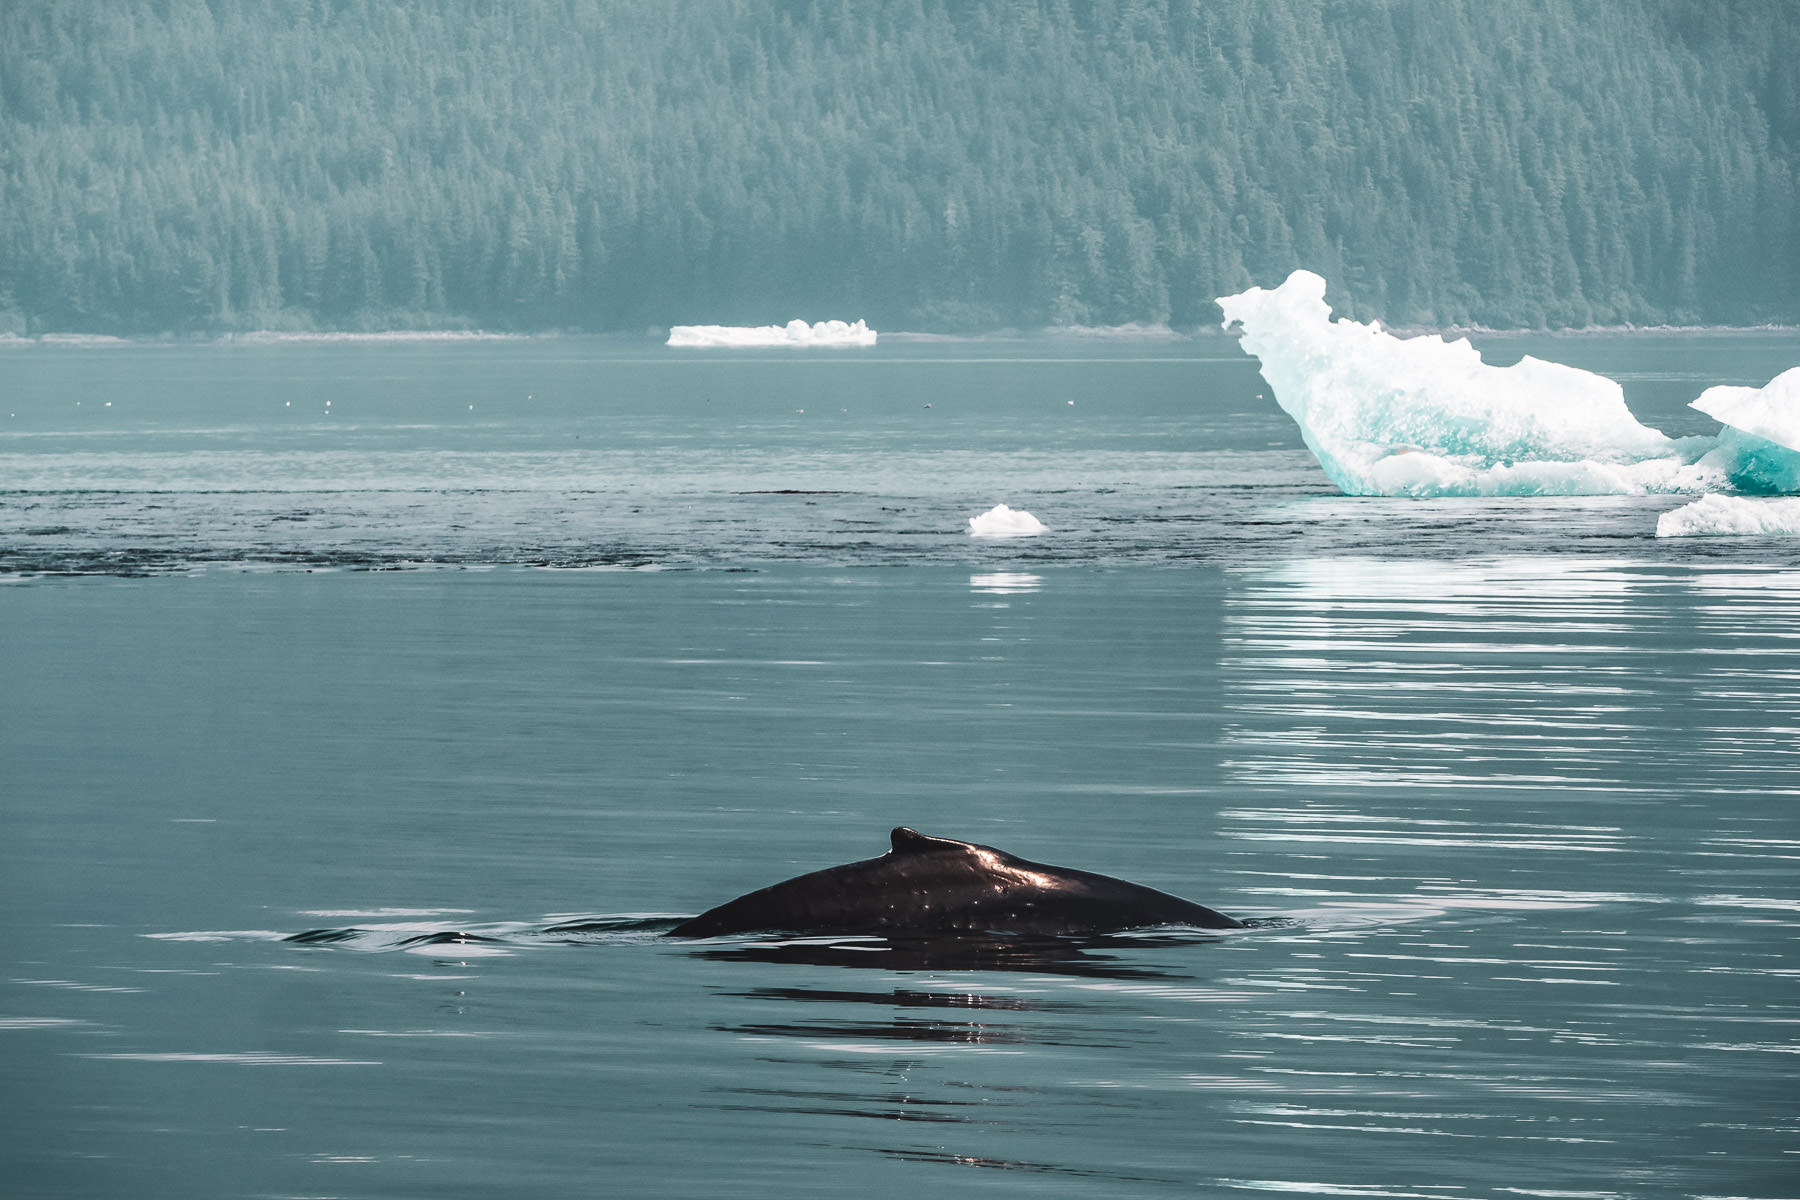 A humpback whale breaches the surface of Alaska's Stephens Passage south of Juneau.